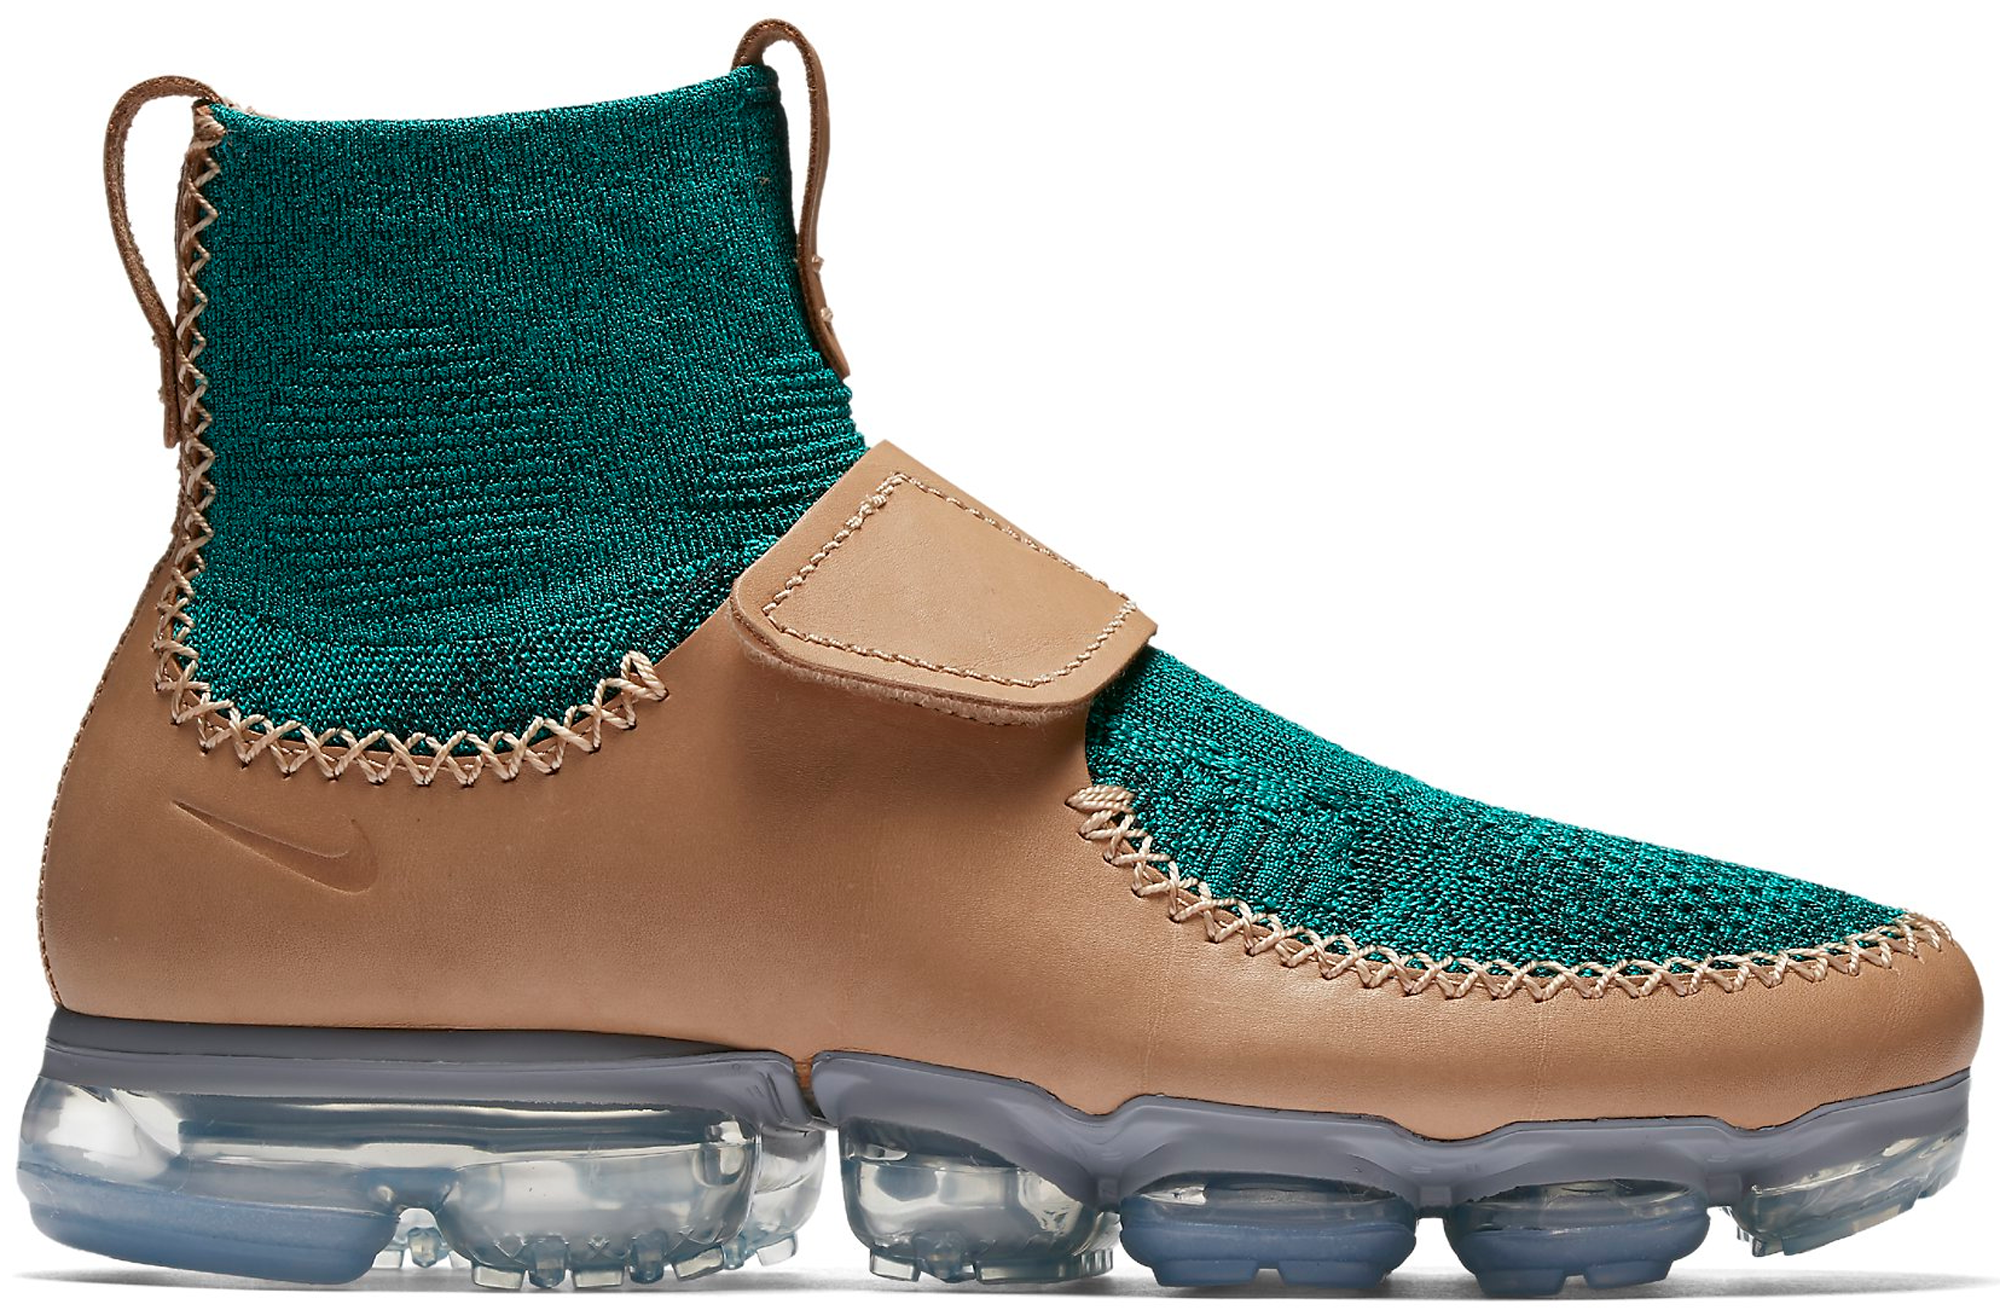 f0aebb9a8c4 Marc Newson x Nike Air VaporMax Vachetta Tan - StockX News